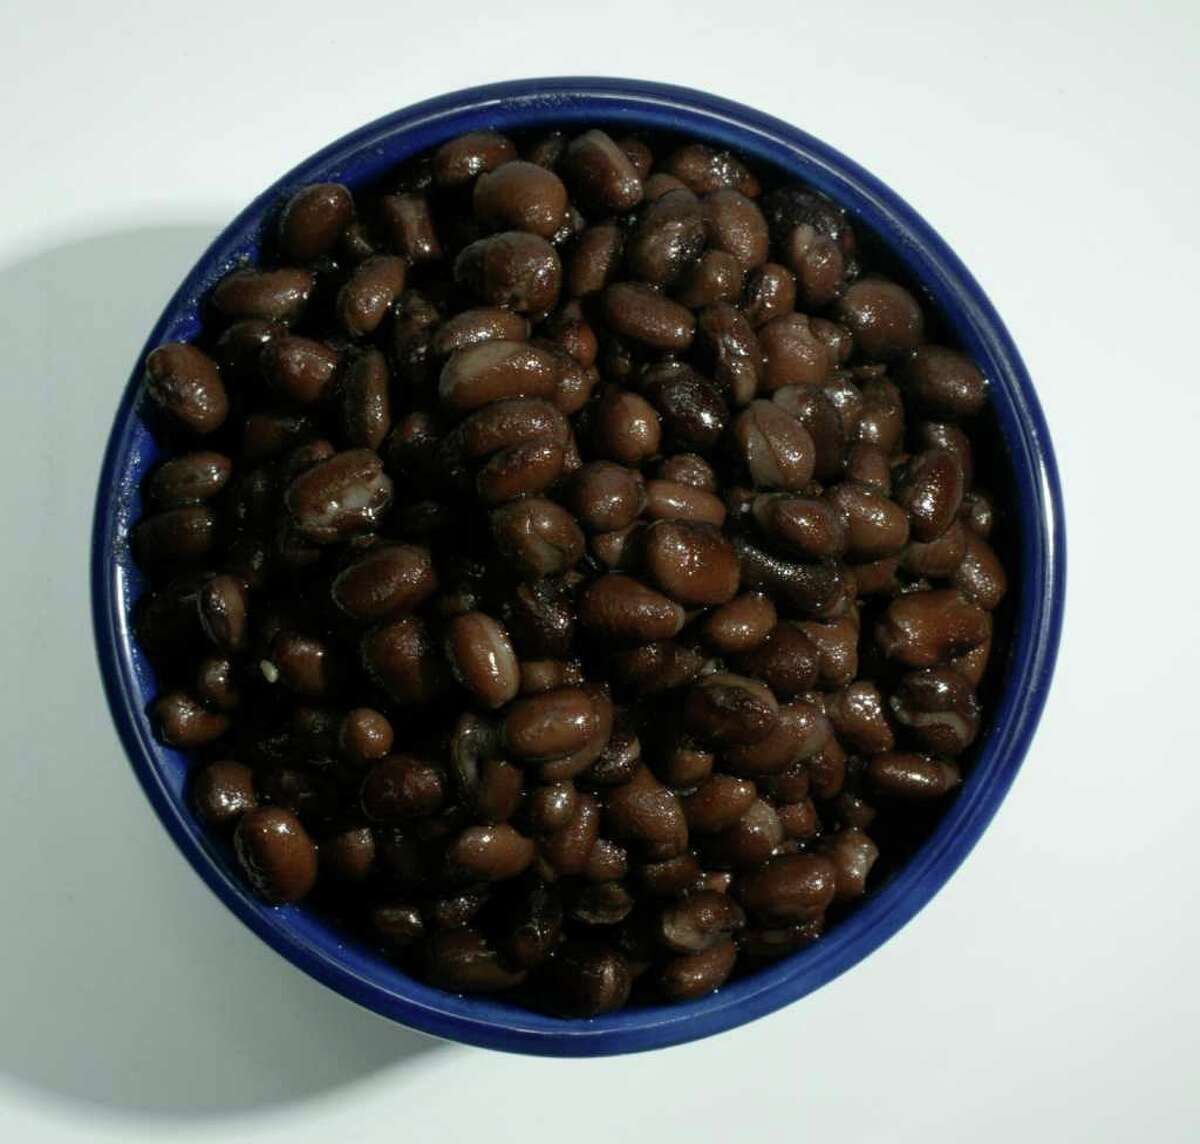 A bowl of black beans was shot in studio, 6/23/04, for a Food Cover. (Buster Dean / Chronicle)